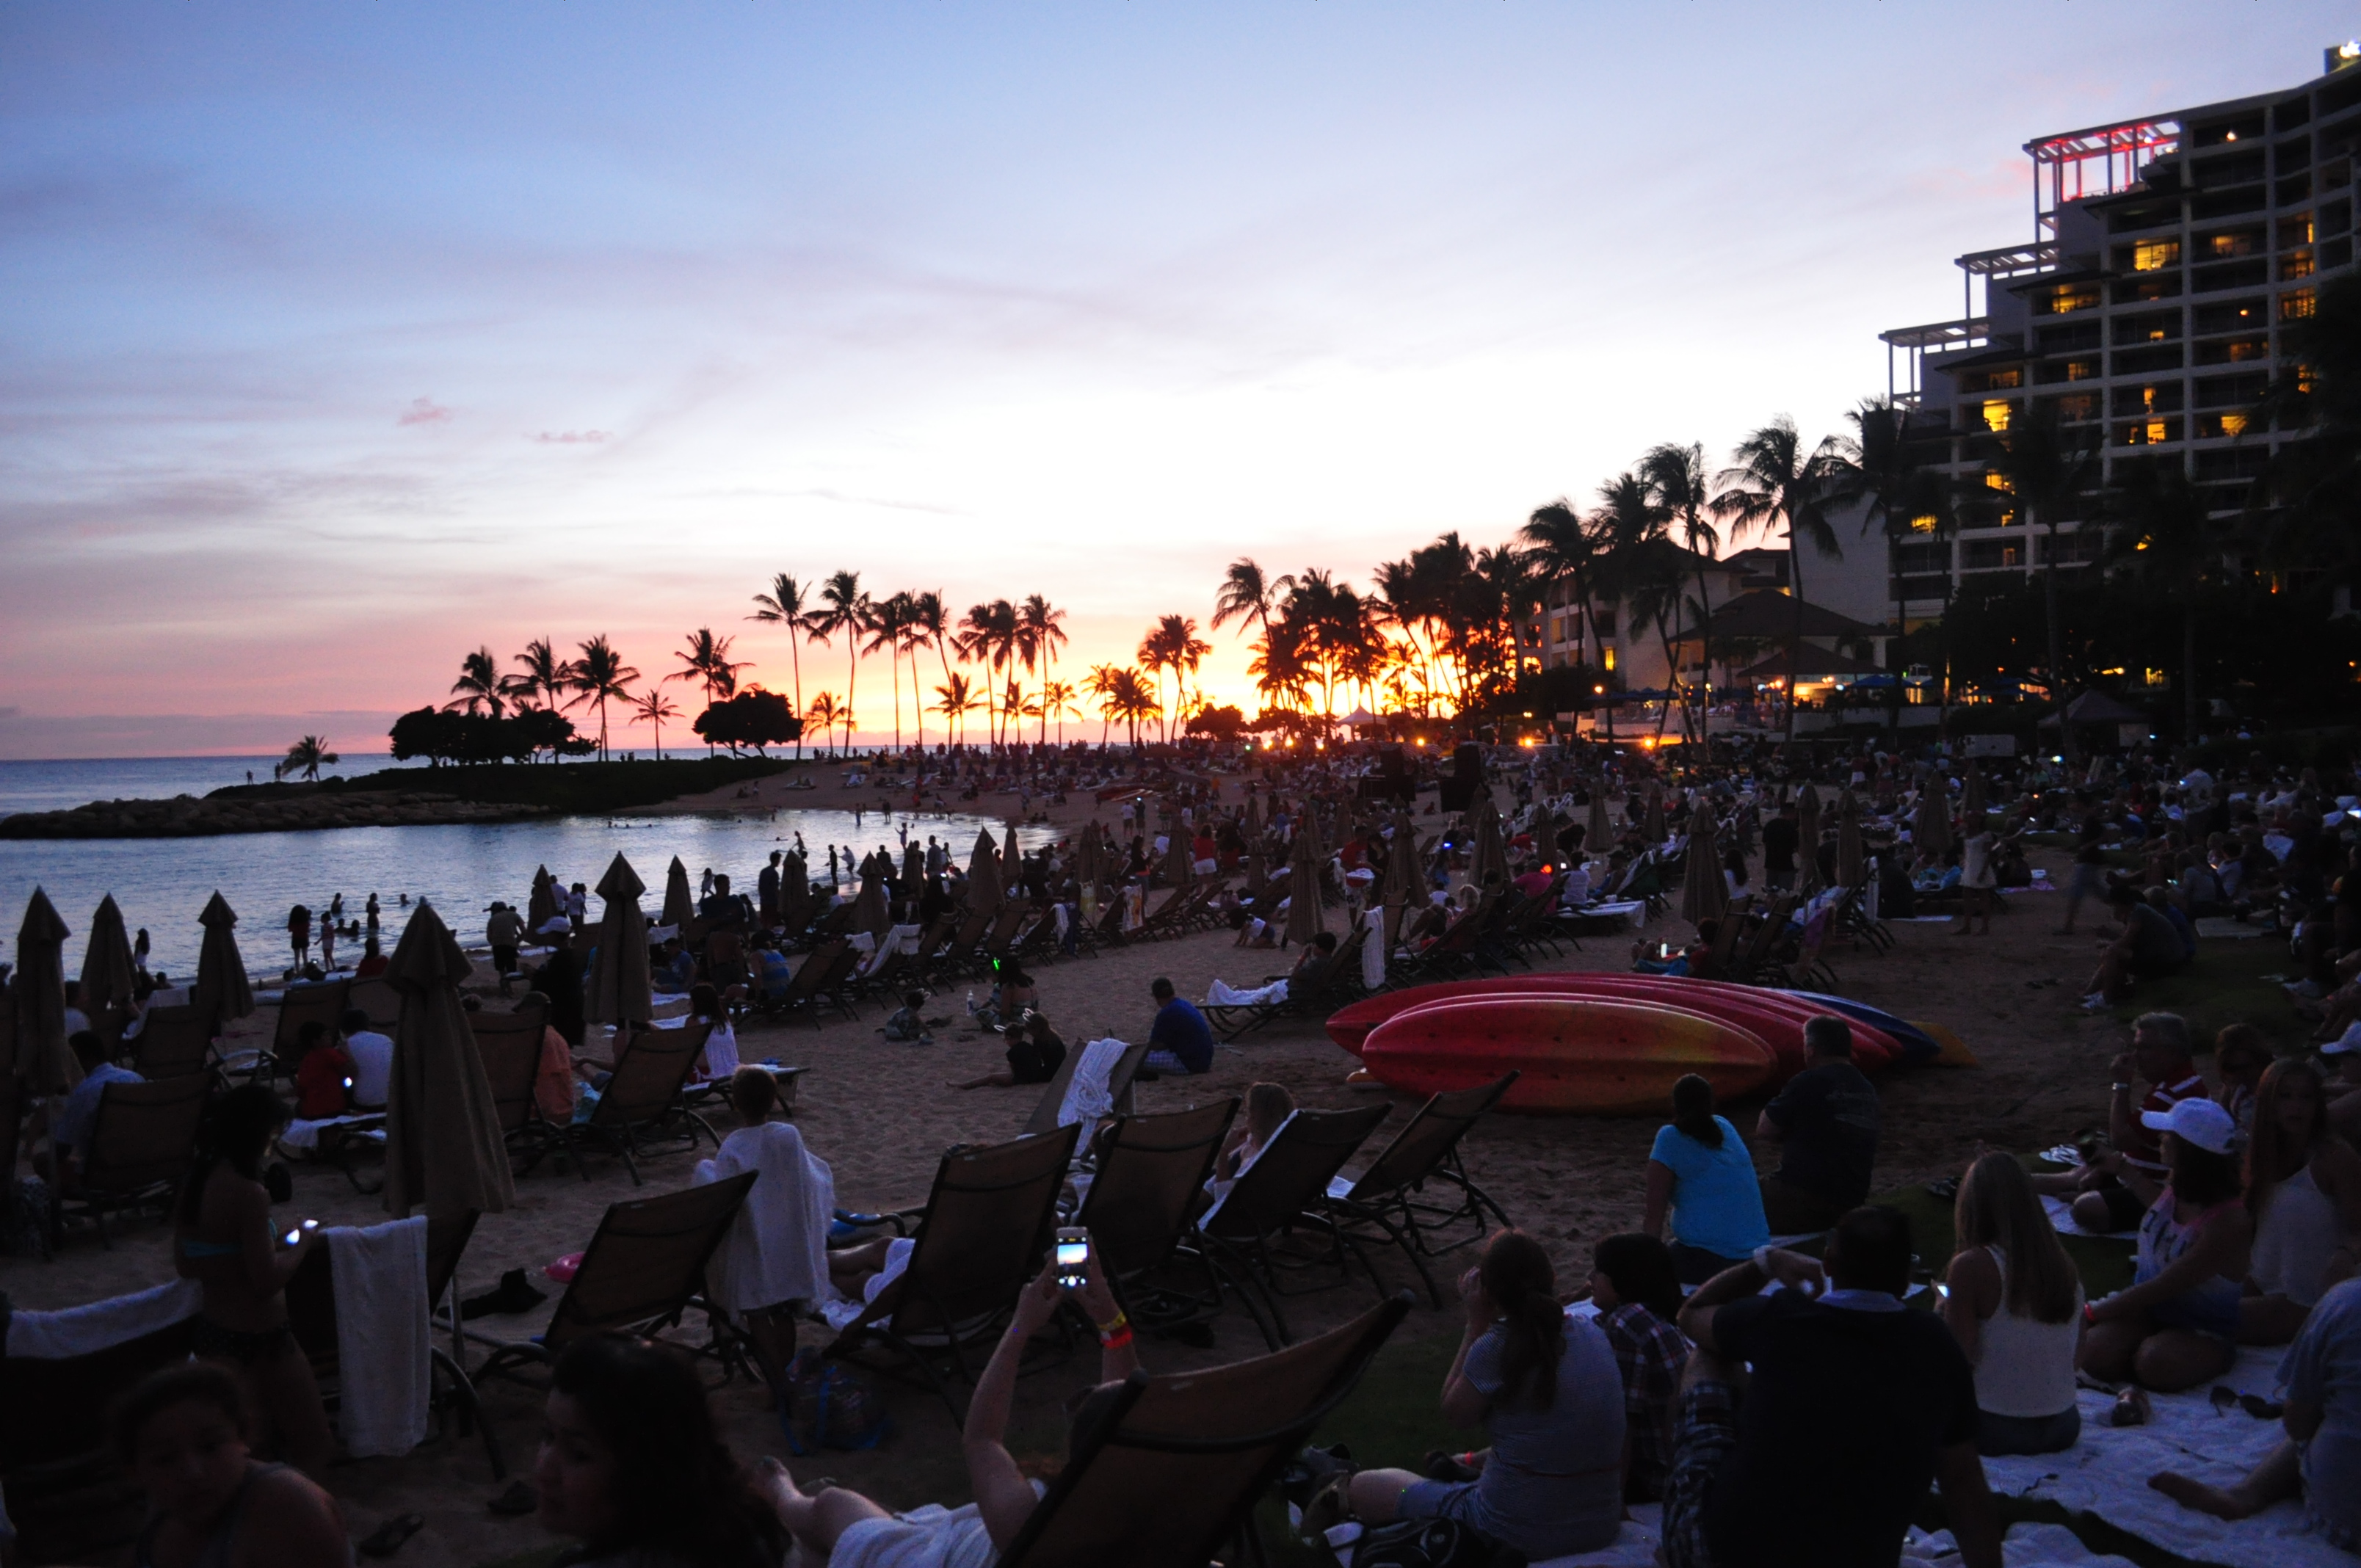 Thousands filled the beach a Ko'Olina lagoon 1 to witness an amazing sunset and an amazing fireworks display. Photos By Melanie Gonzalez/Hawaiiahe.